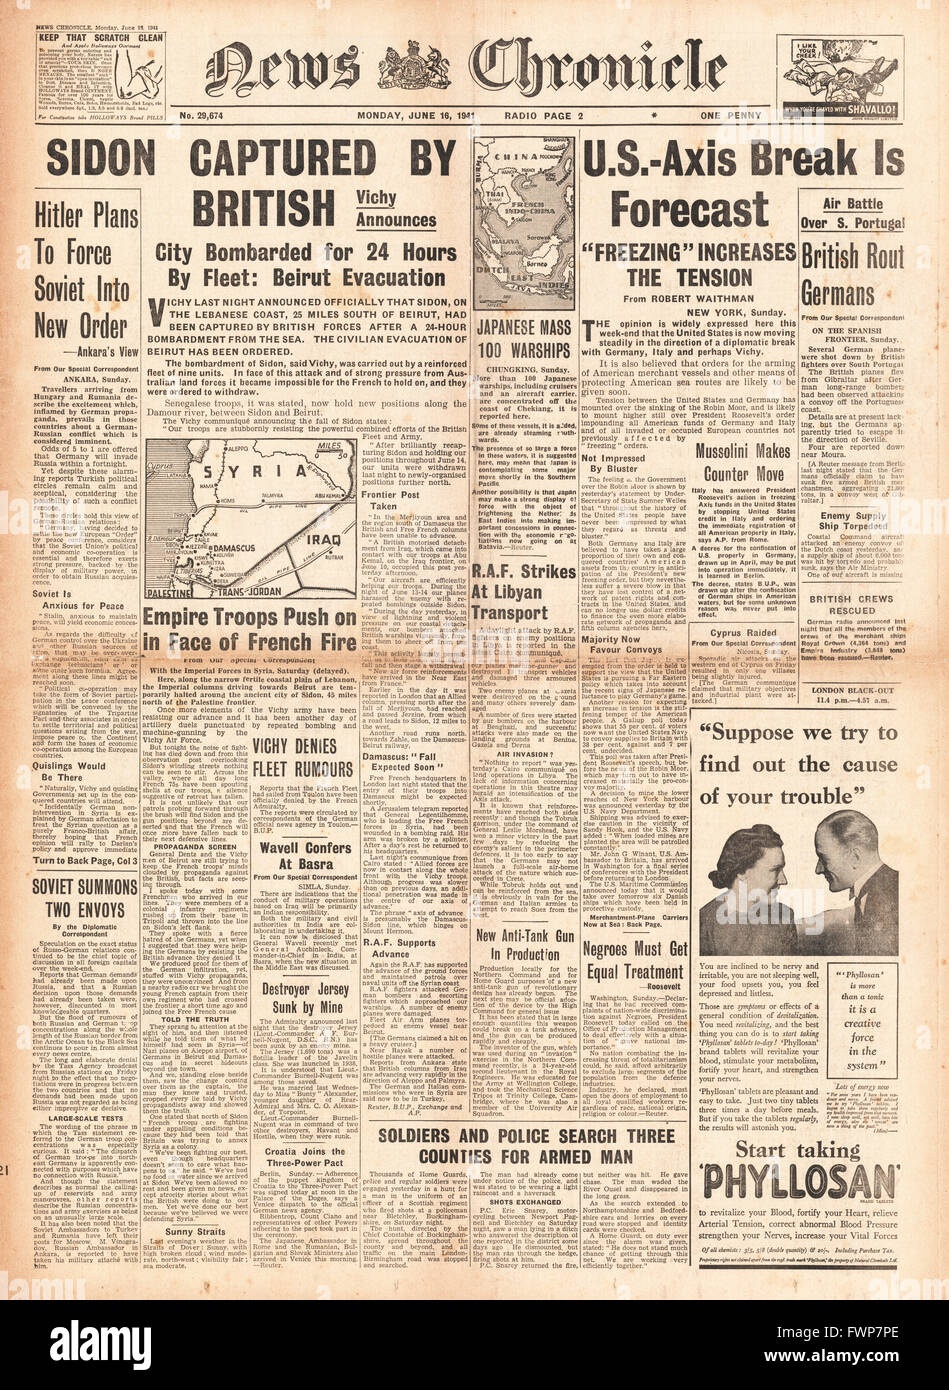 1941 front page  News Chronicle British Forces capture Syrian port of Sidon and U.S. - Axis diplomatic tension - Stock Image